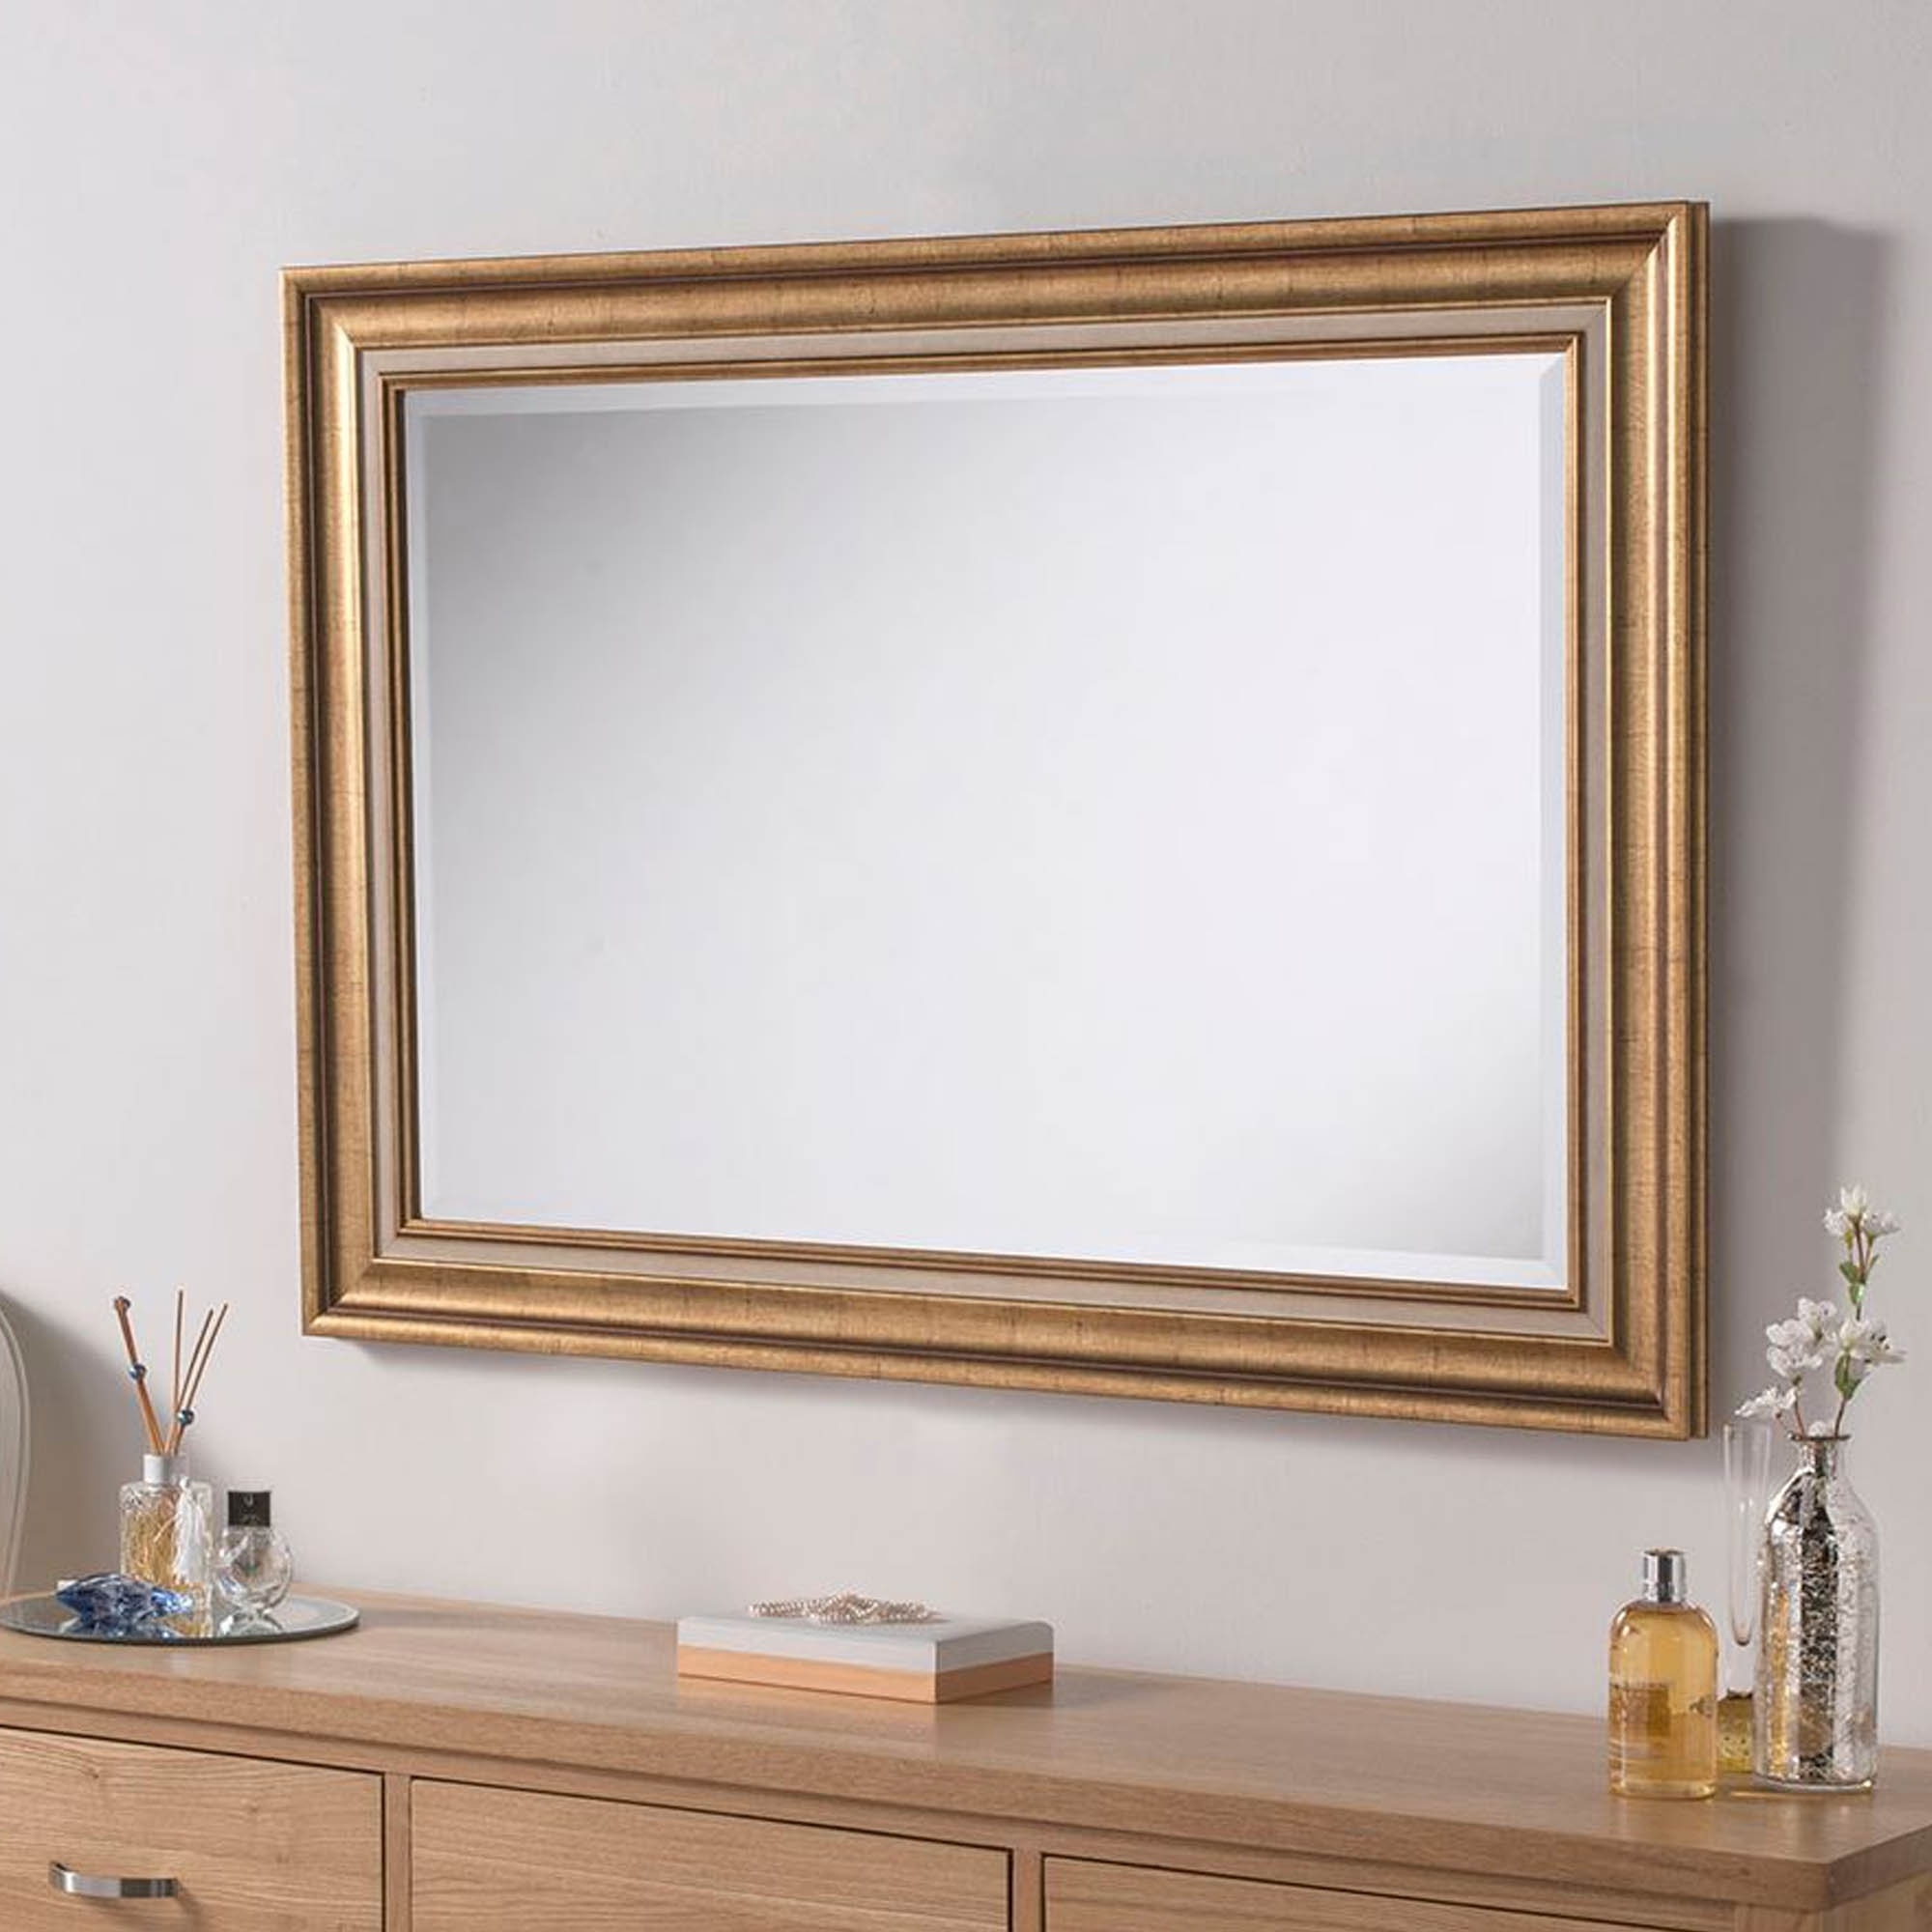 Fashionable Framed Wall Mirrors Within Rectangular Gold Aged Frame Wall Mirror (View 3 of 20)